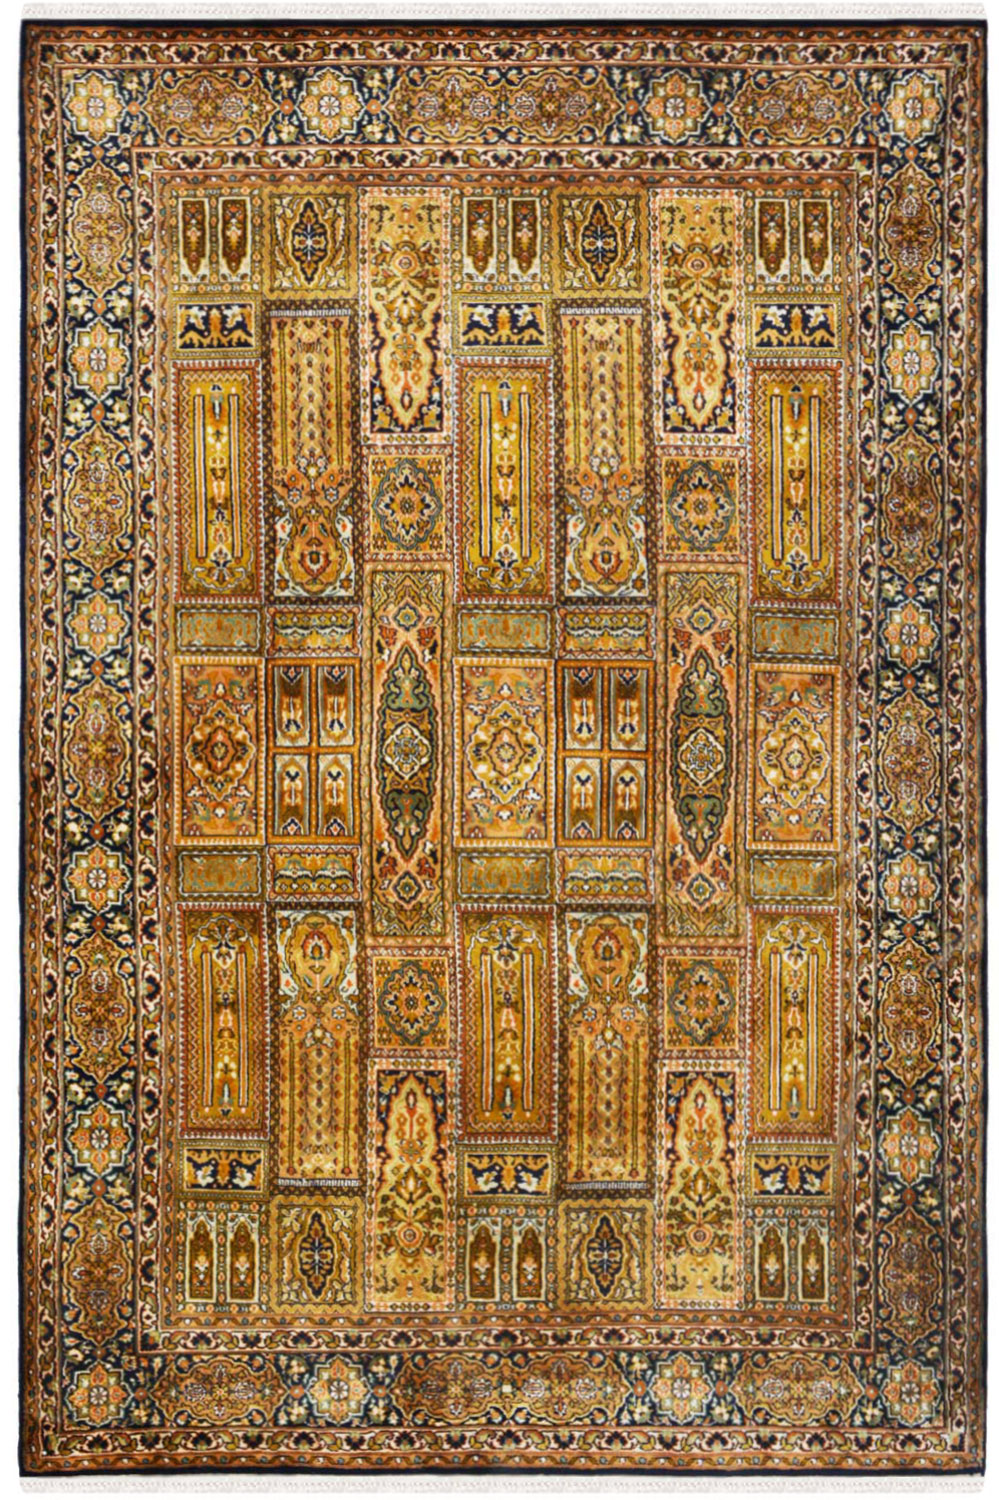 Gold Column Qum Silk Rugs And Carpet Online At Best Price